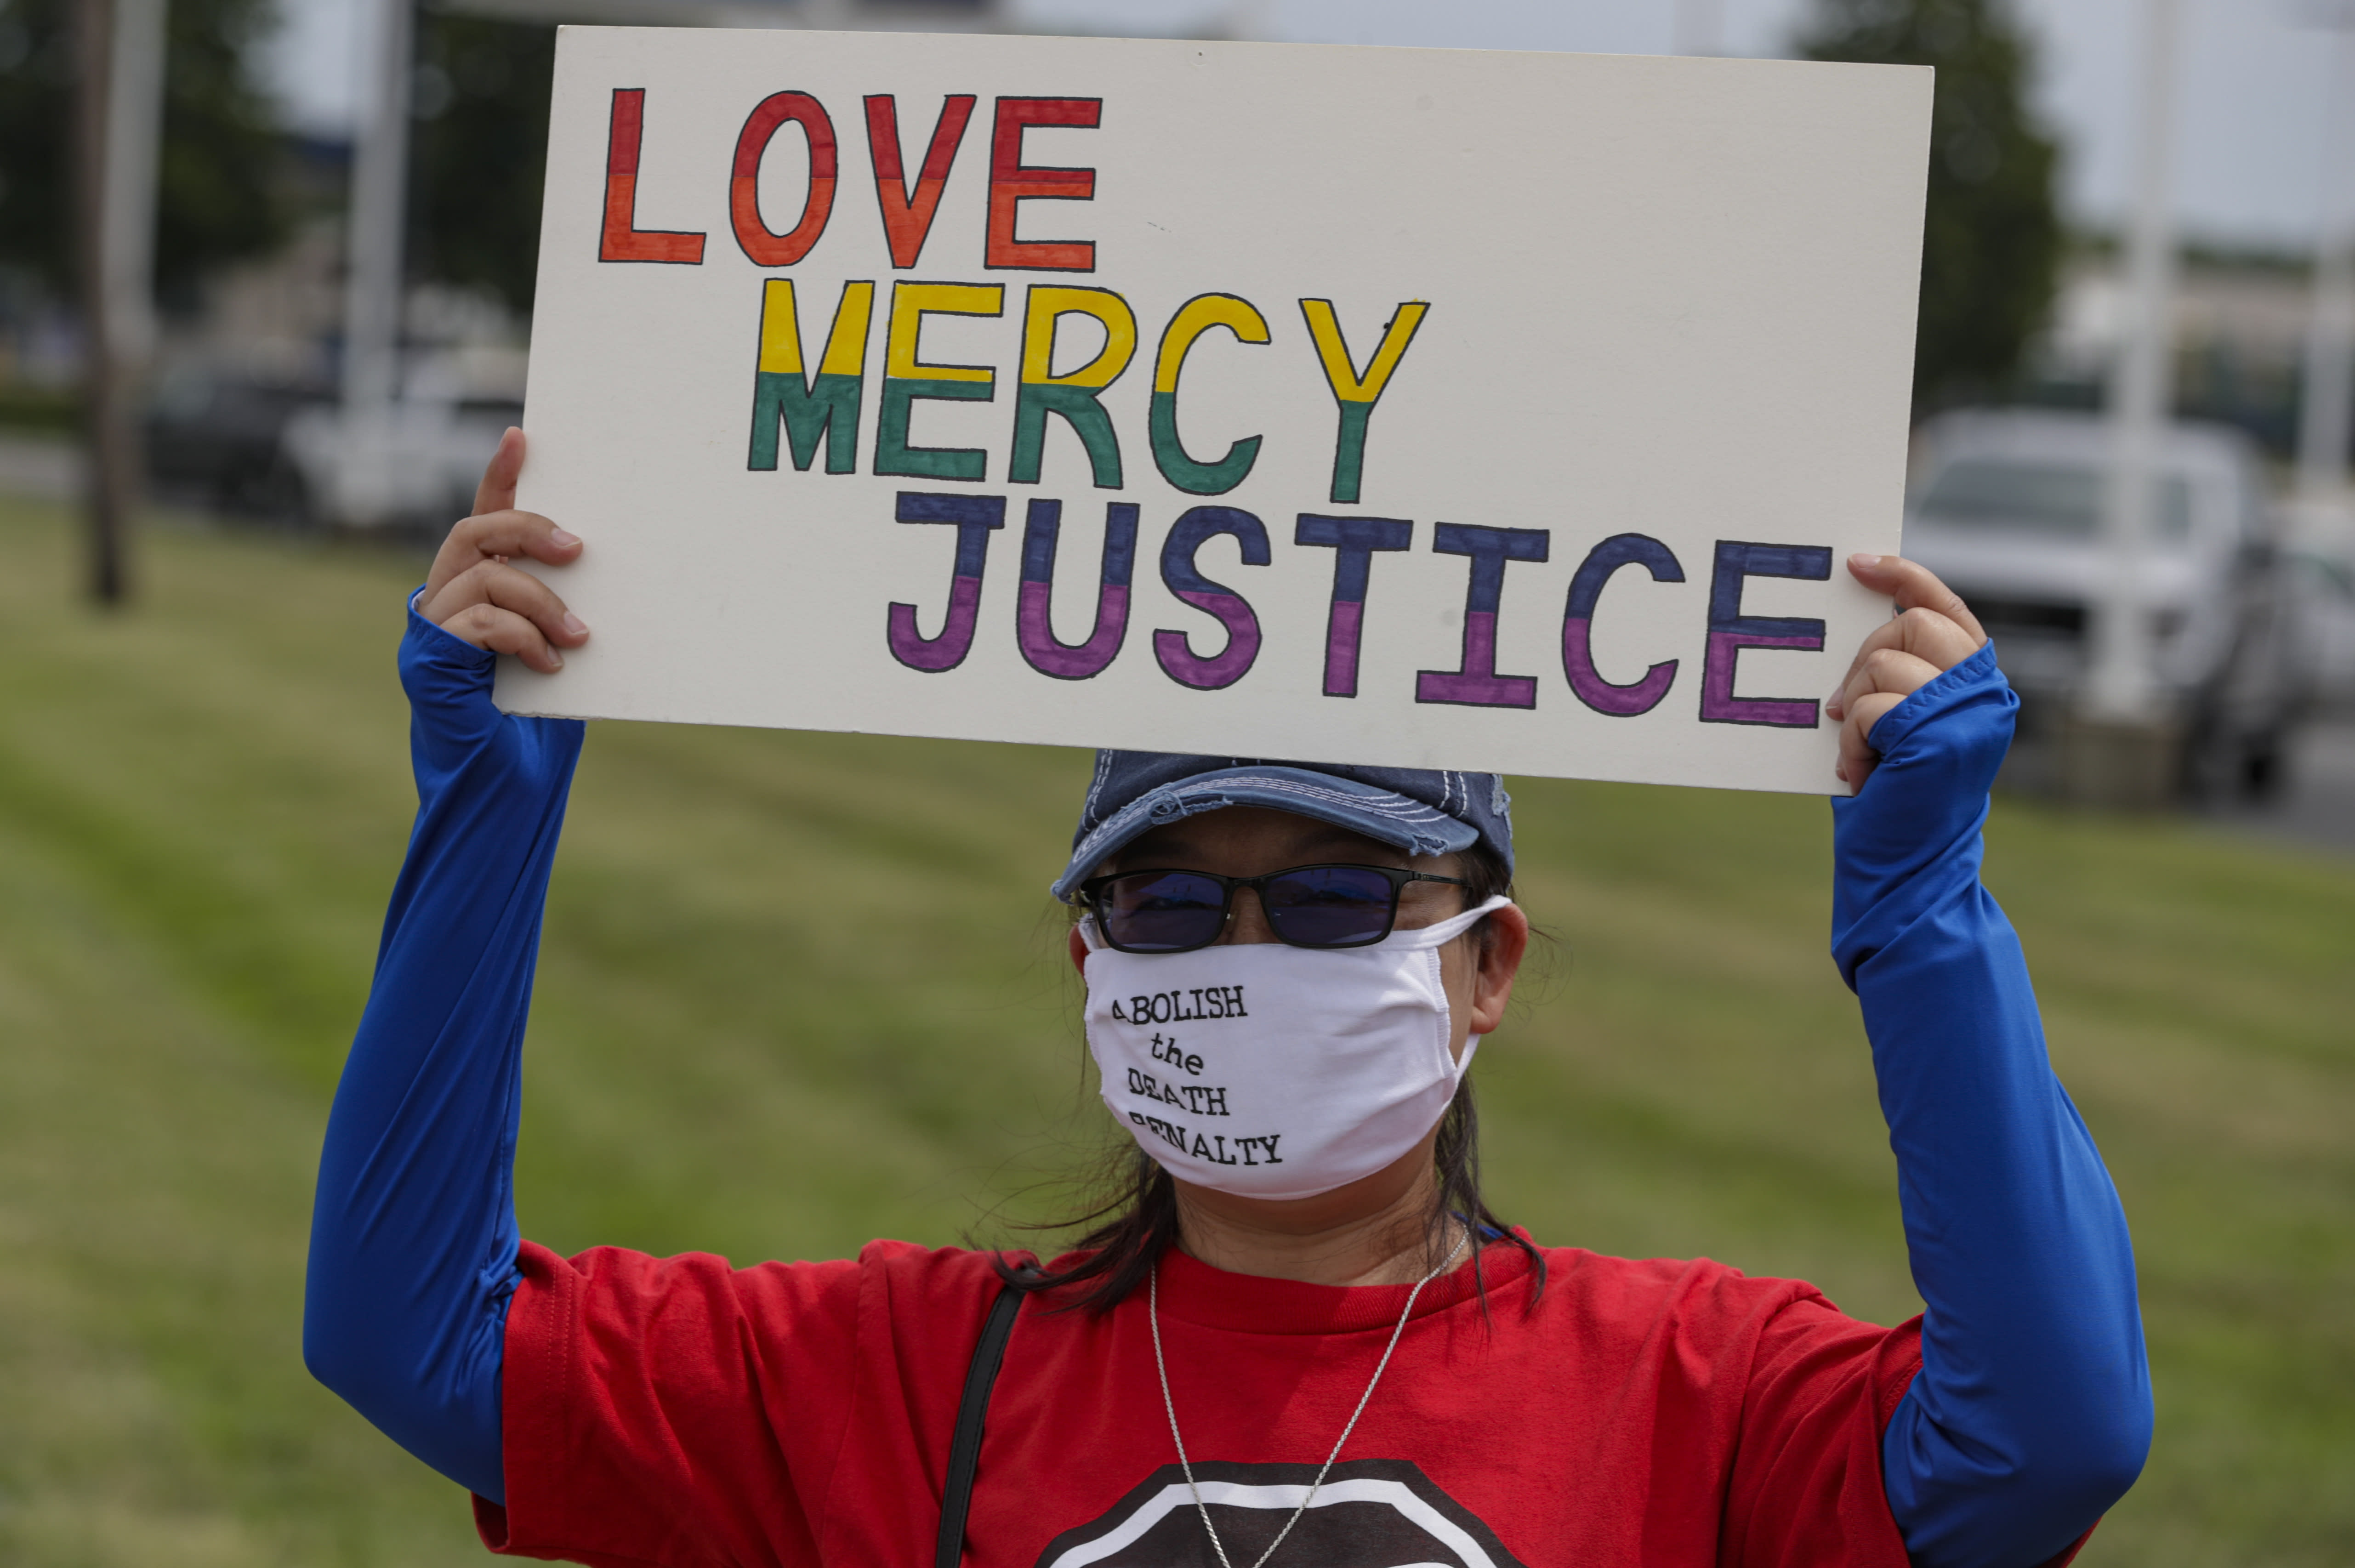 Protesters against the death penalty gather in Terre Haute, Ind., Wednesday, July 15, 2020. Wesley Ira Purkey, convicted of a gruesome 1998 kidnapping and killing, is scheduled to be executed Wednesday evening at the federal prison in Terre Haute. (AP Photo/Michael Conroy)